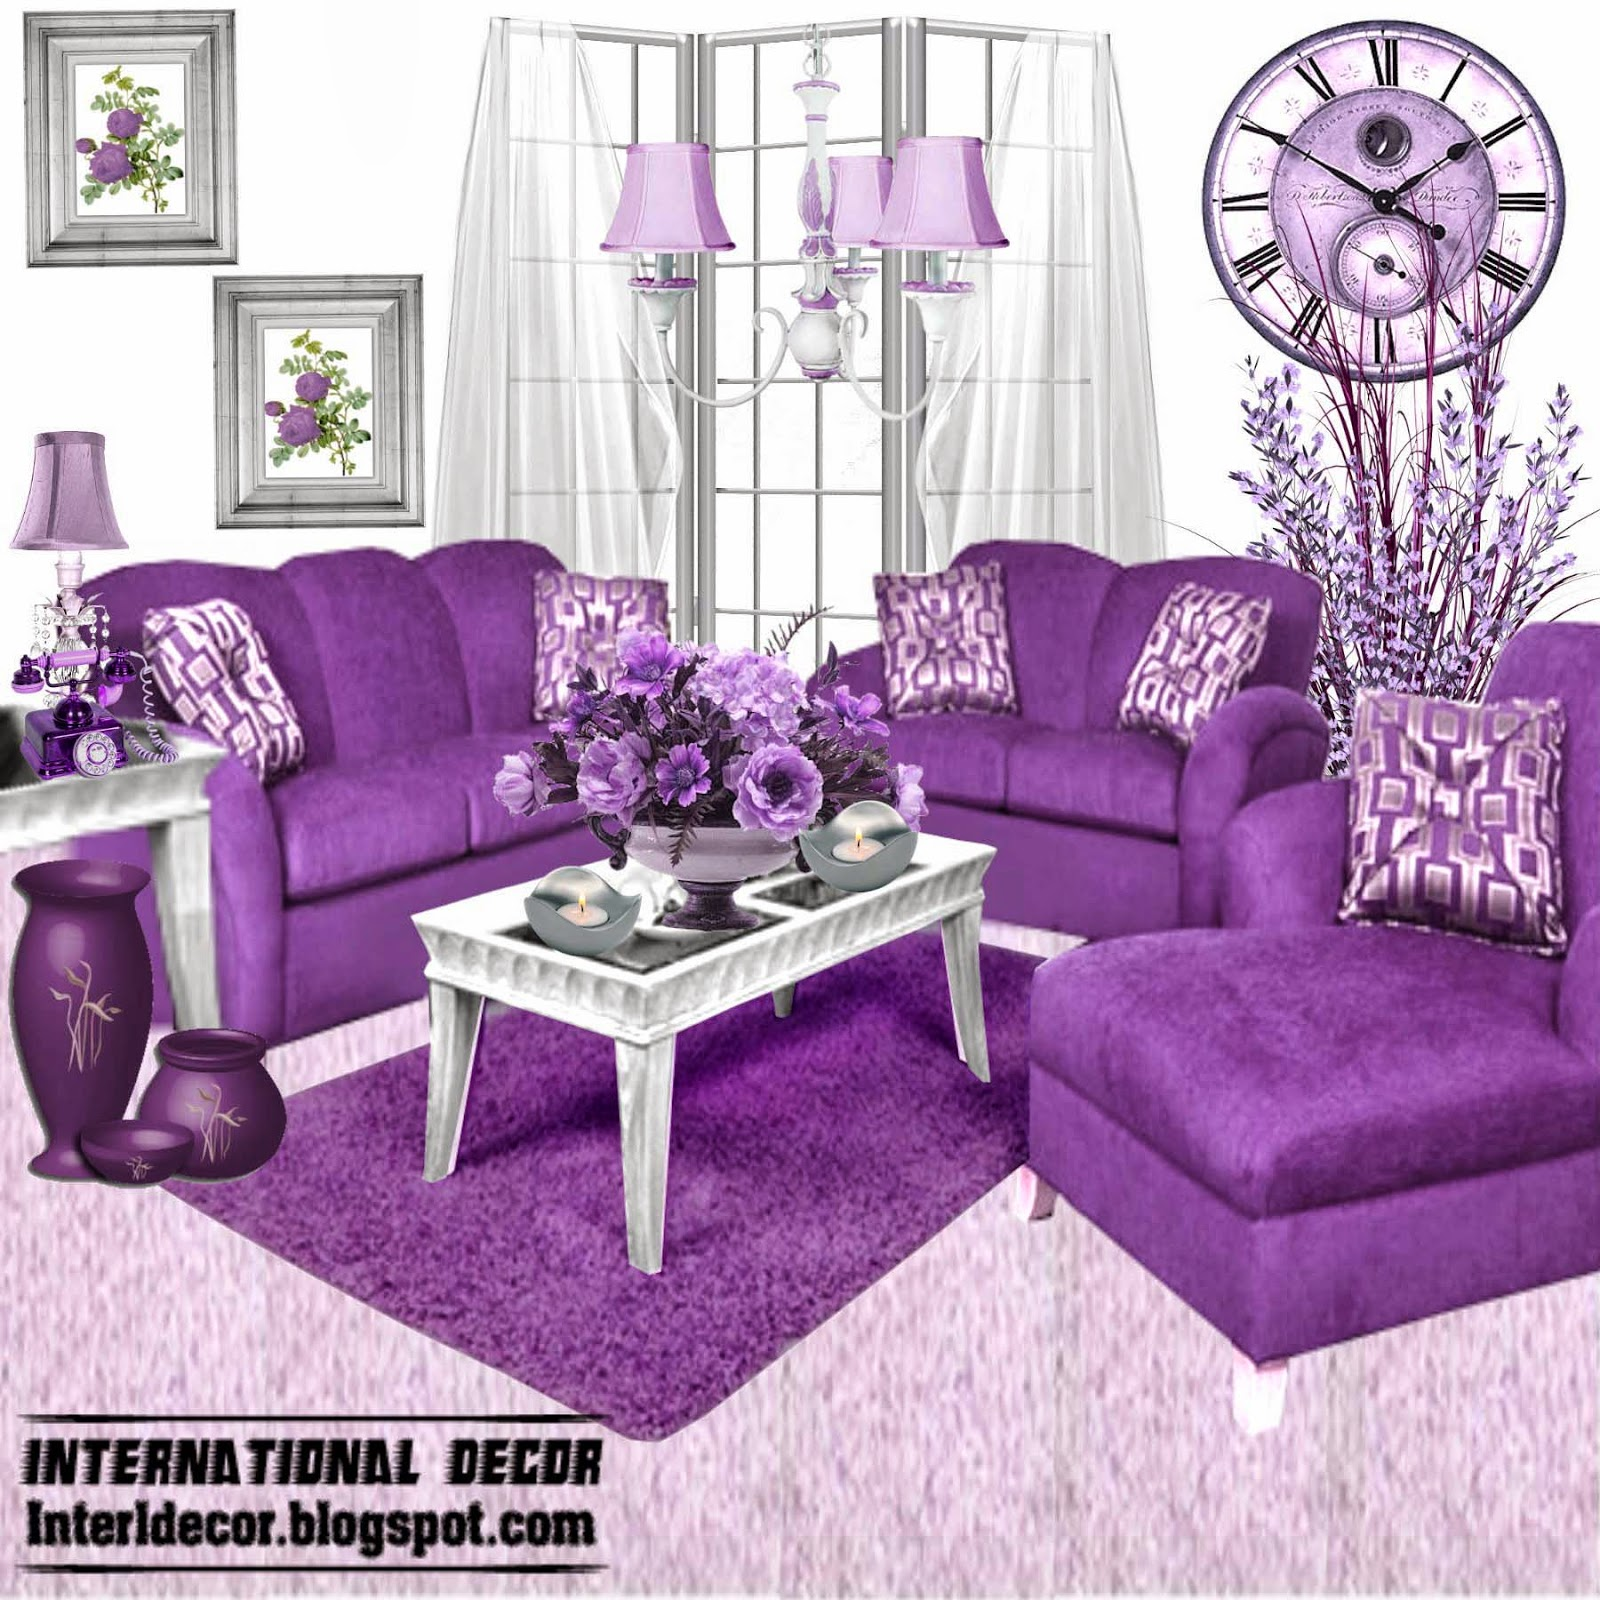 Luxury purple furniture sets sofas chairs for living for Sofa set for small living room